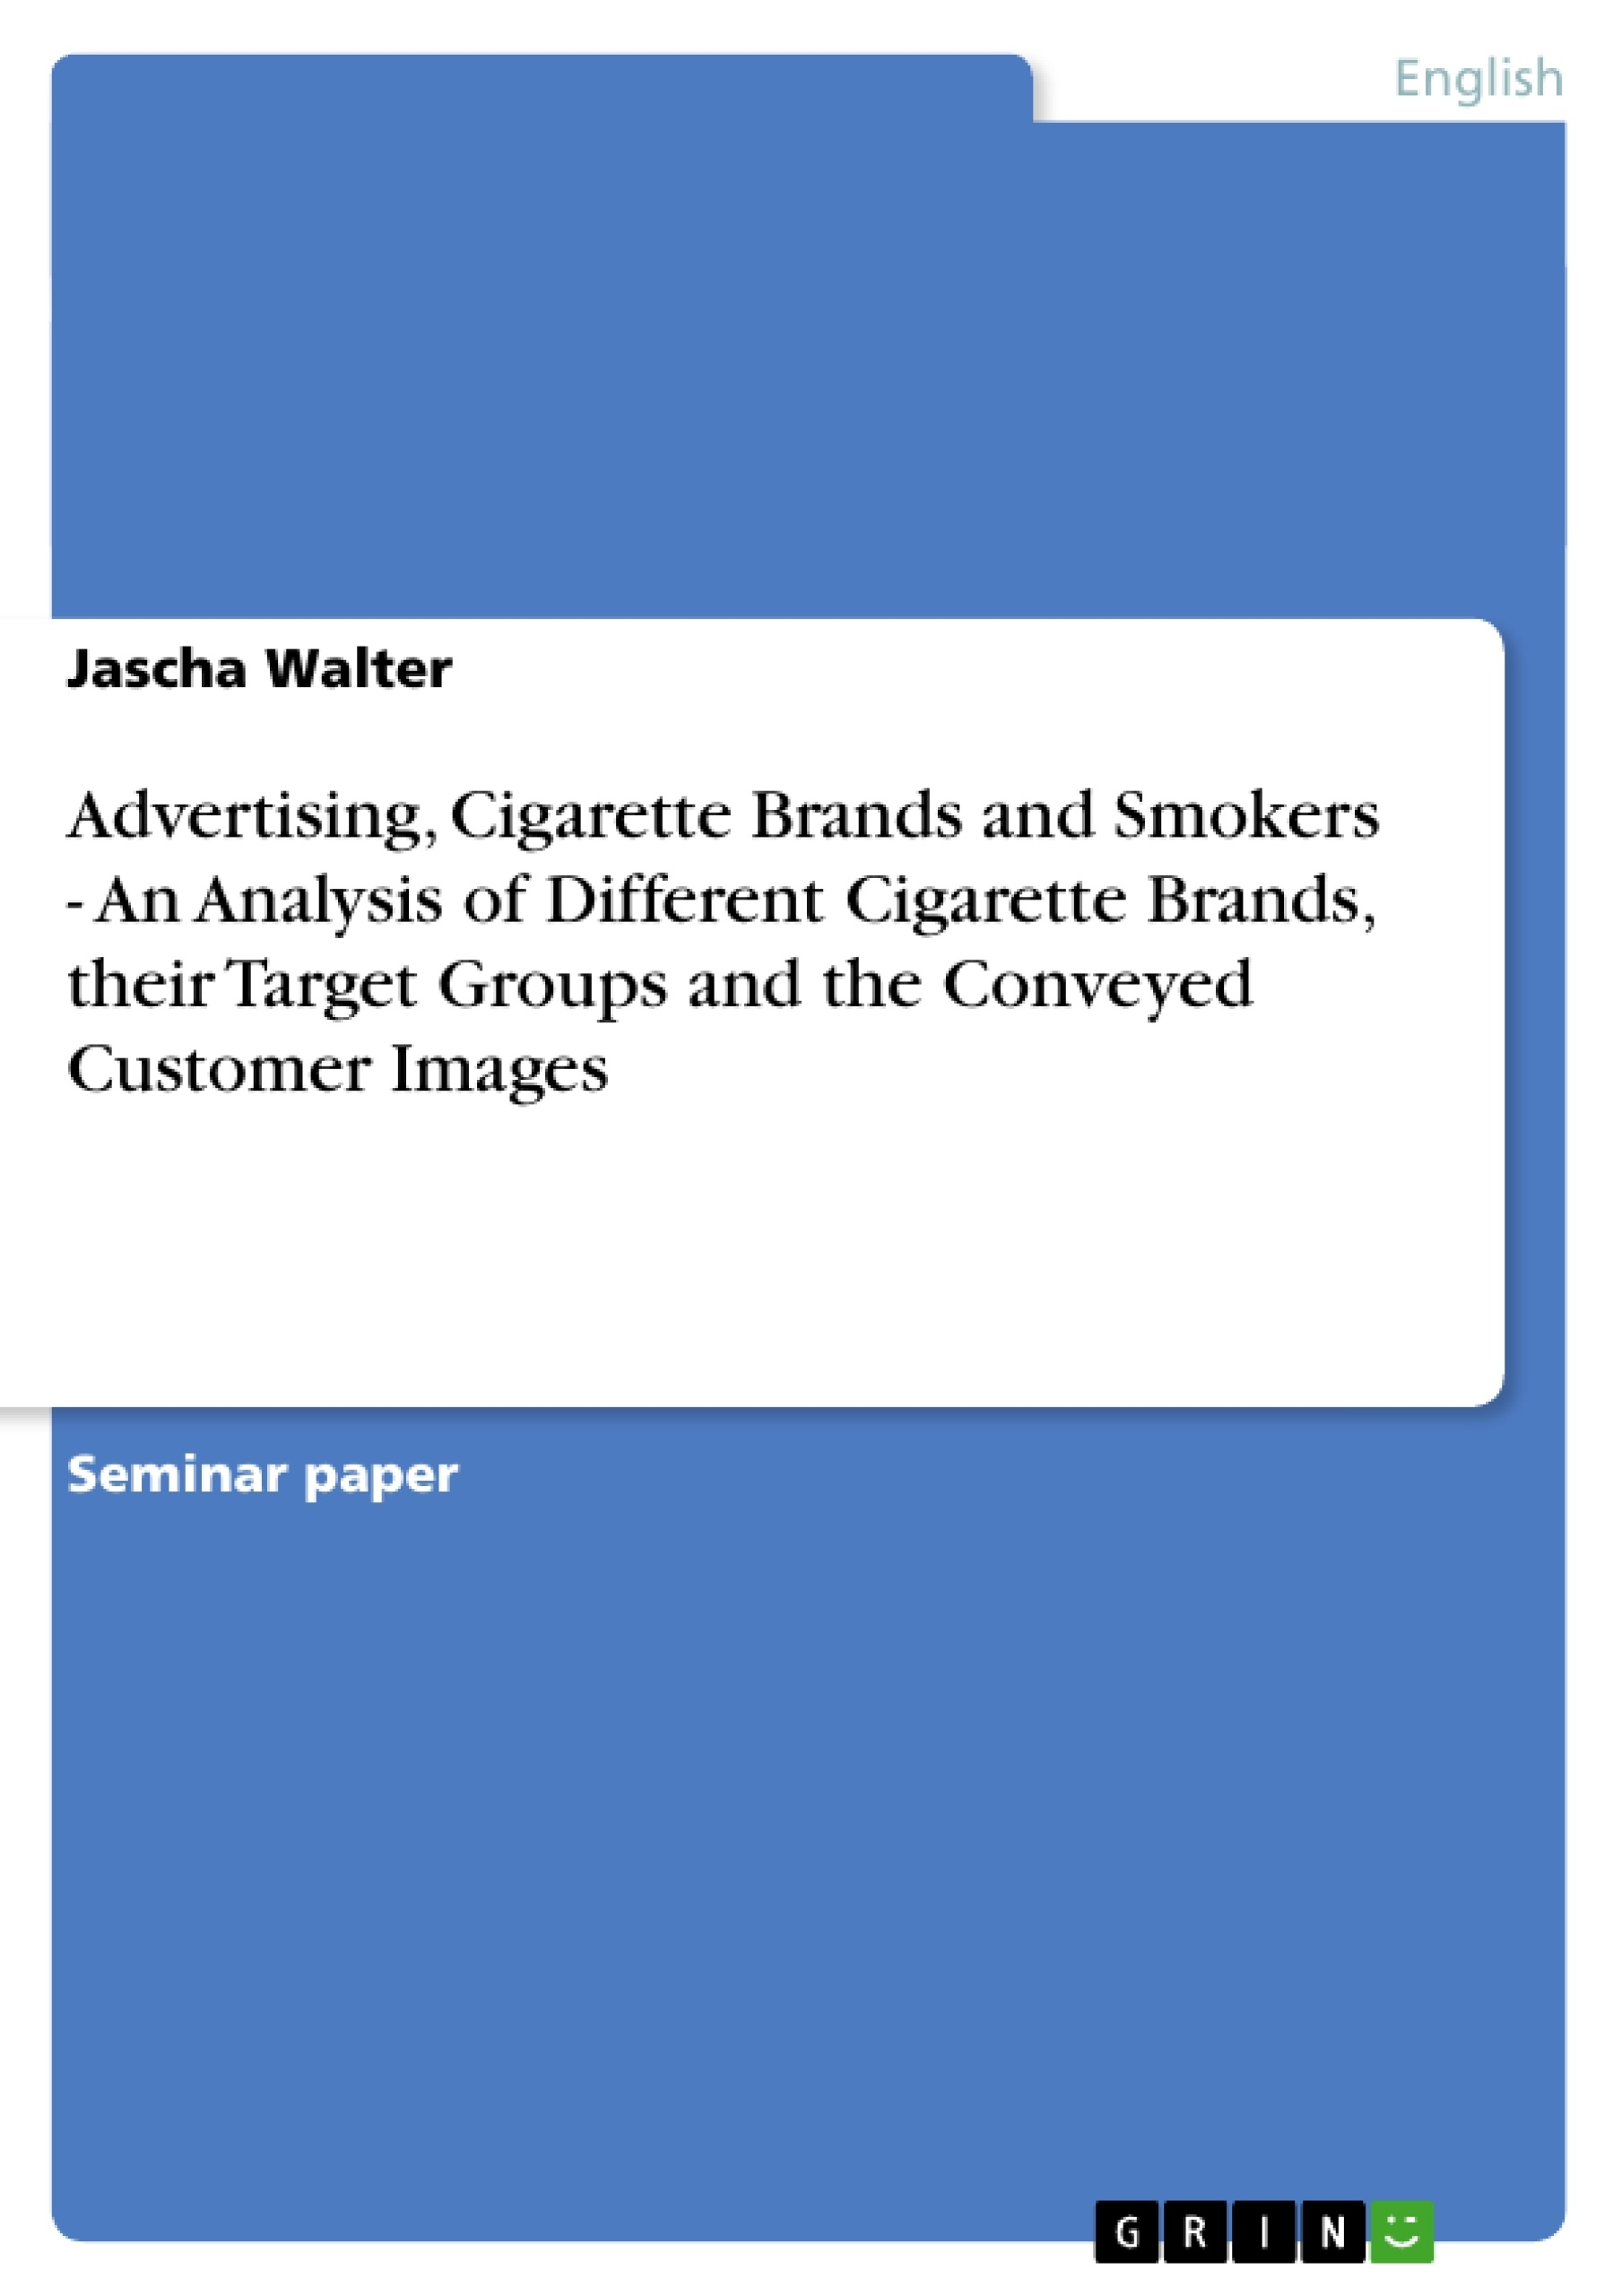 Title: Advertising, Cigarette Brands and Smokers - An Analysis of Different Cigarette Brands, their Target Groups and the Conveyed Customer Images